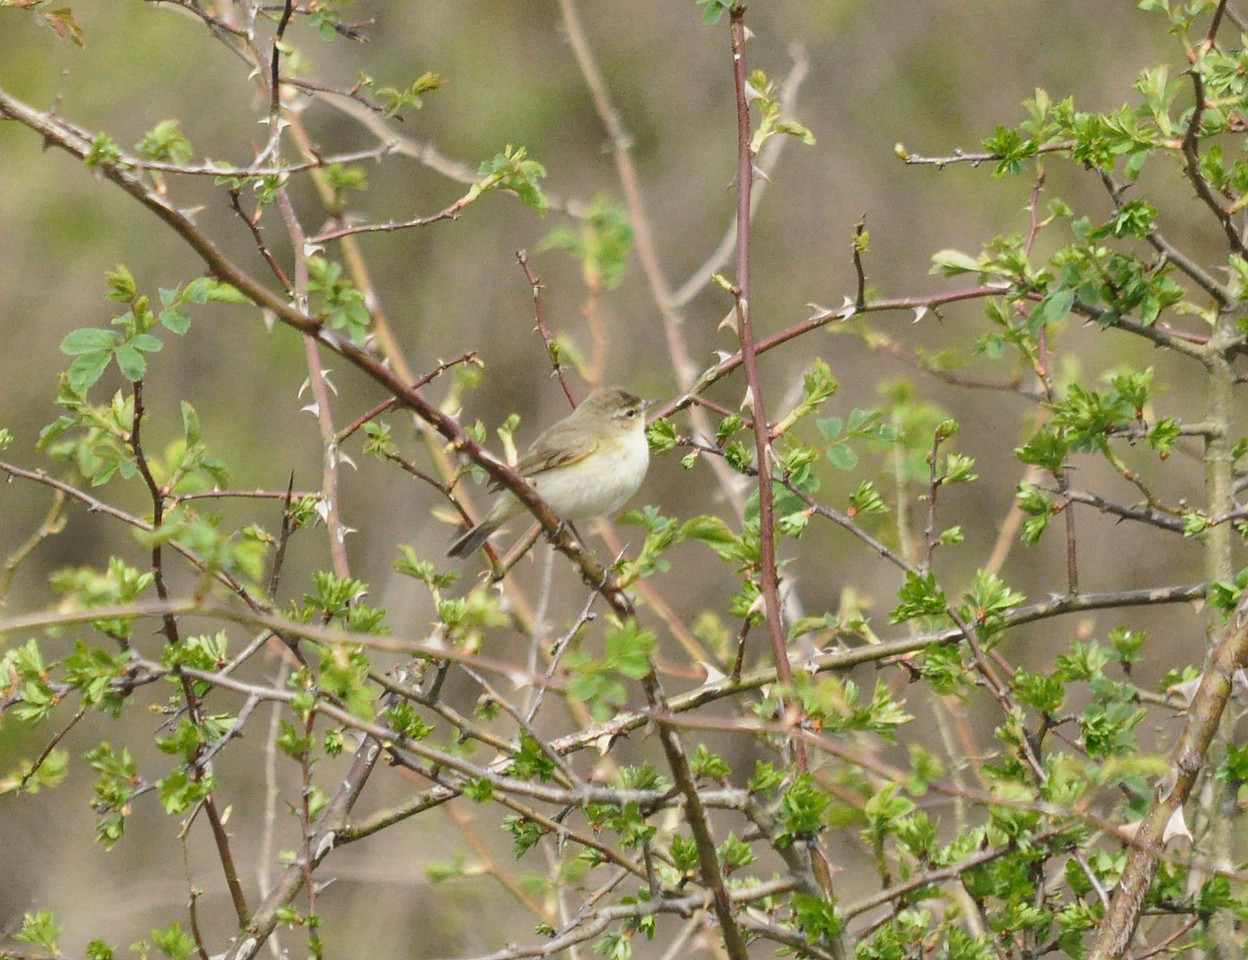 Chiff chaff Ivinghoe May 2012